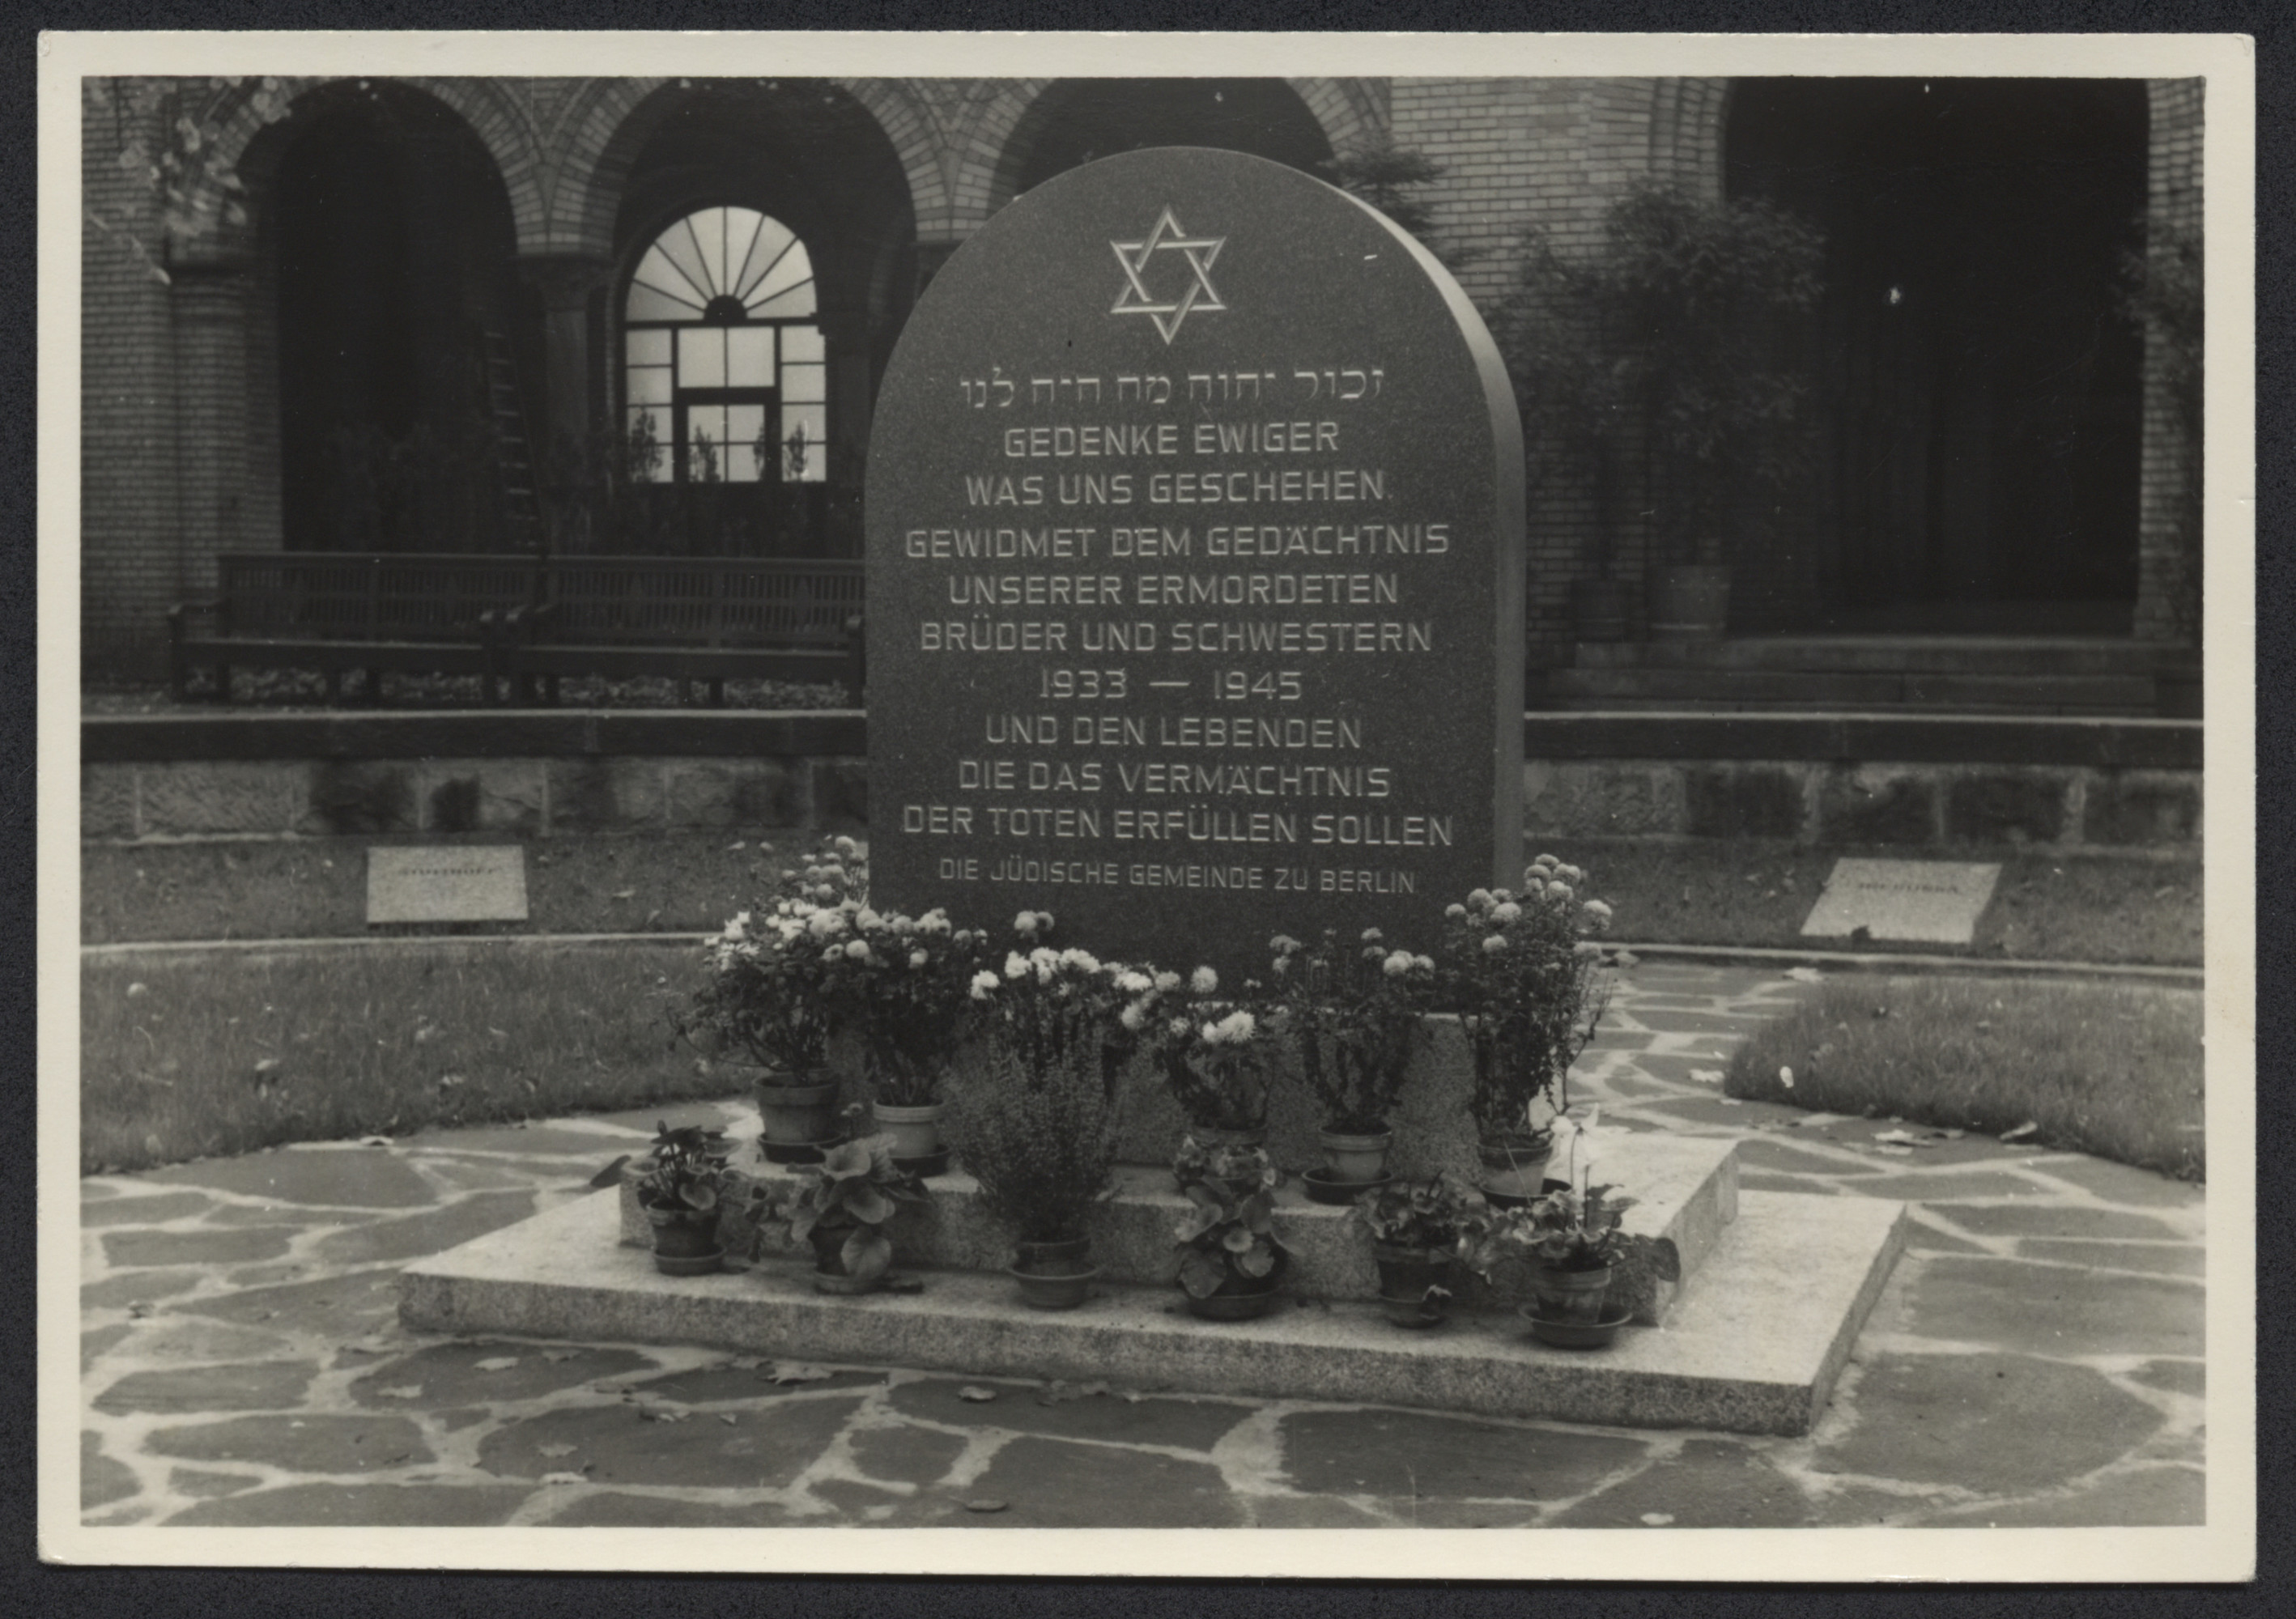 "Memorial  to Holocaust victims in Berlin.  The engraving on the stone reads, ""Gedenke ewiger was uns geschehen gewidmet dem gedachtnis unserer ermordeten brueder und schwestern 1933-1945  und den lebenden die das vermachtnis der toten erfuellen sollen die Juedische gemeinde zu berlin."" [In eternal memory of what happened to us, dedicated to the thought of our murdered brothers and sisters 1933-1945, and to the living fulfilling their legacy.  The Jewish Community of Berlin. ]"